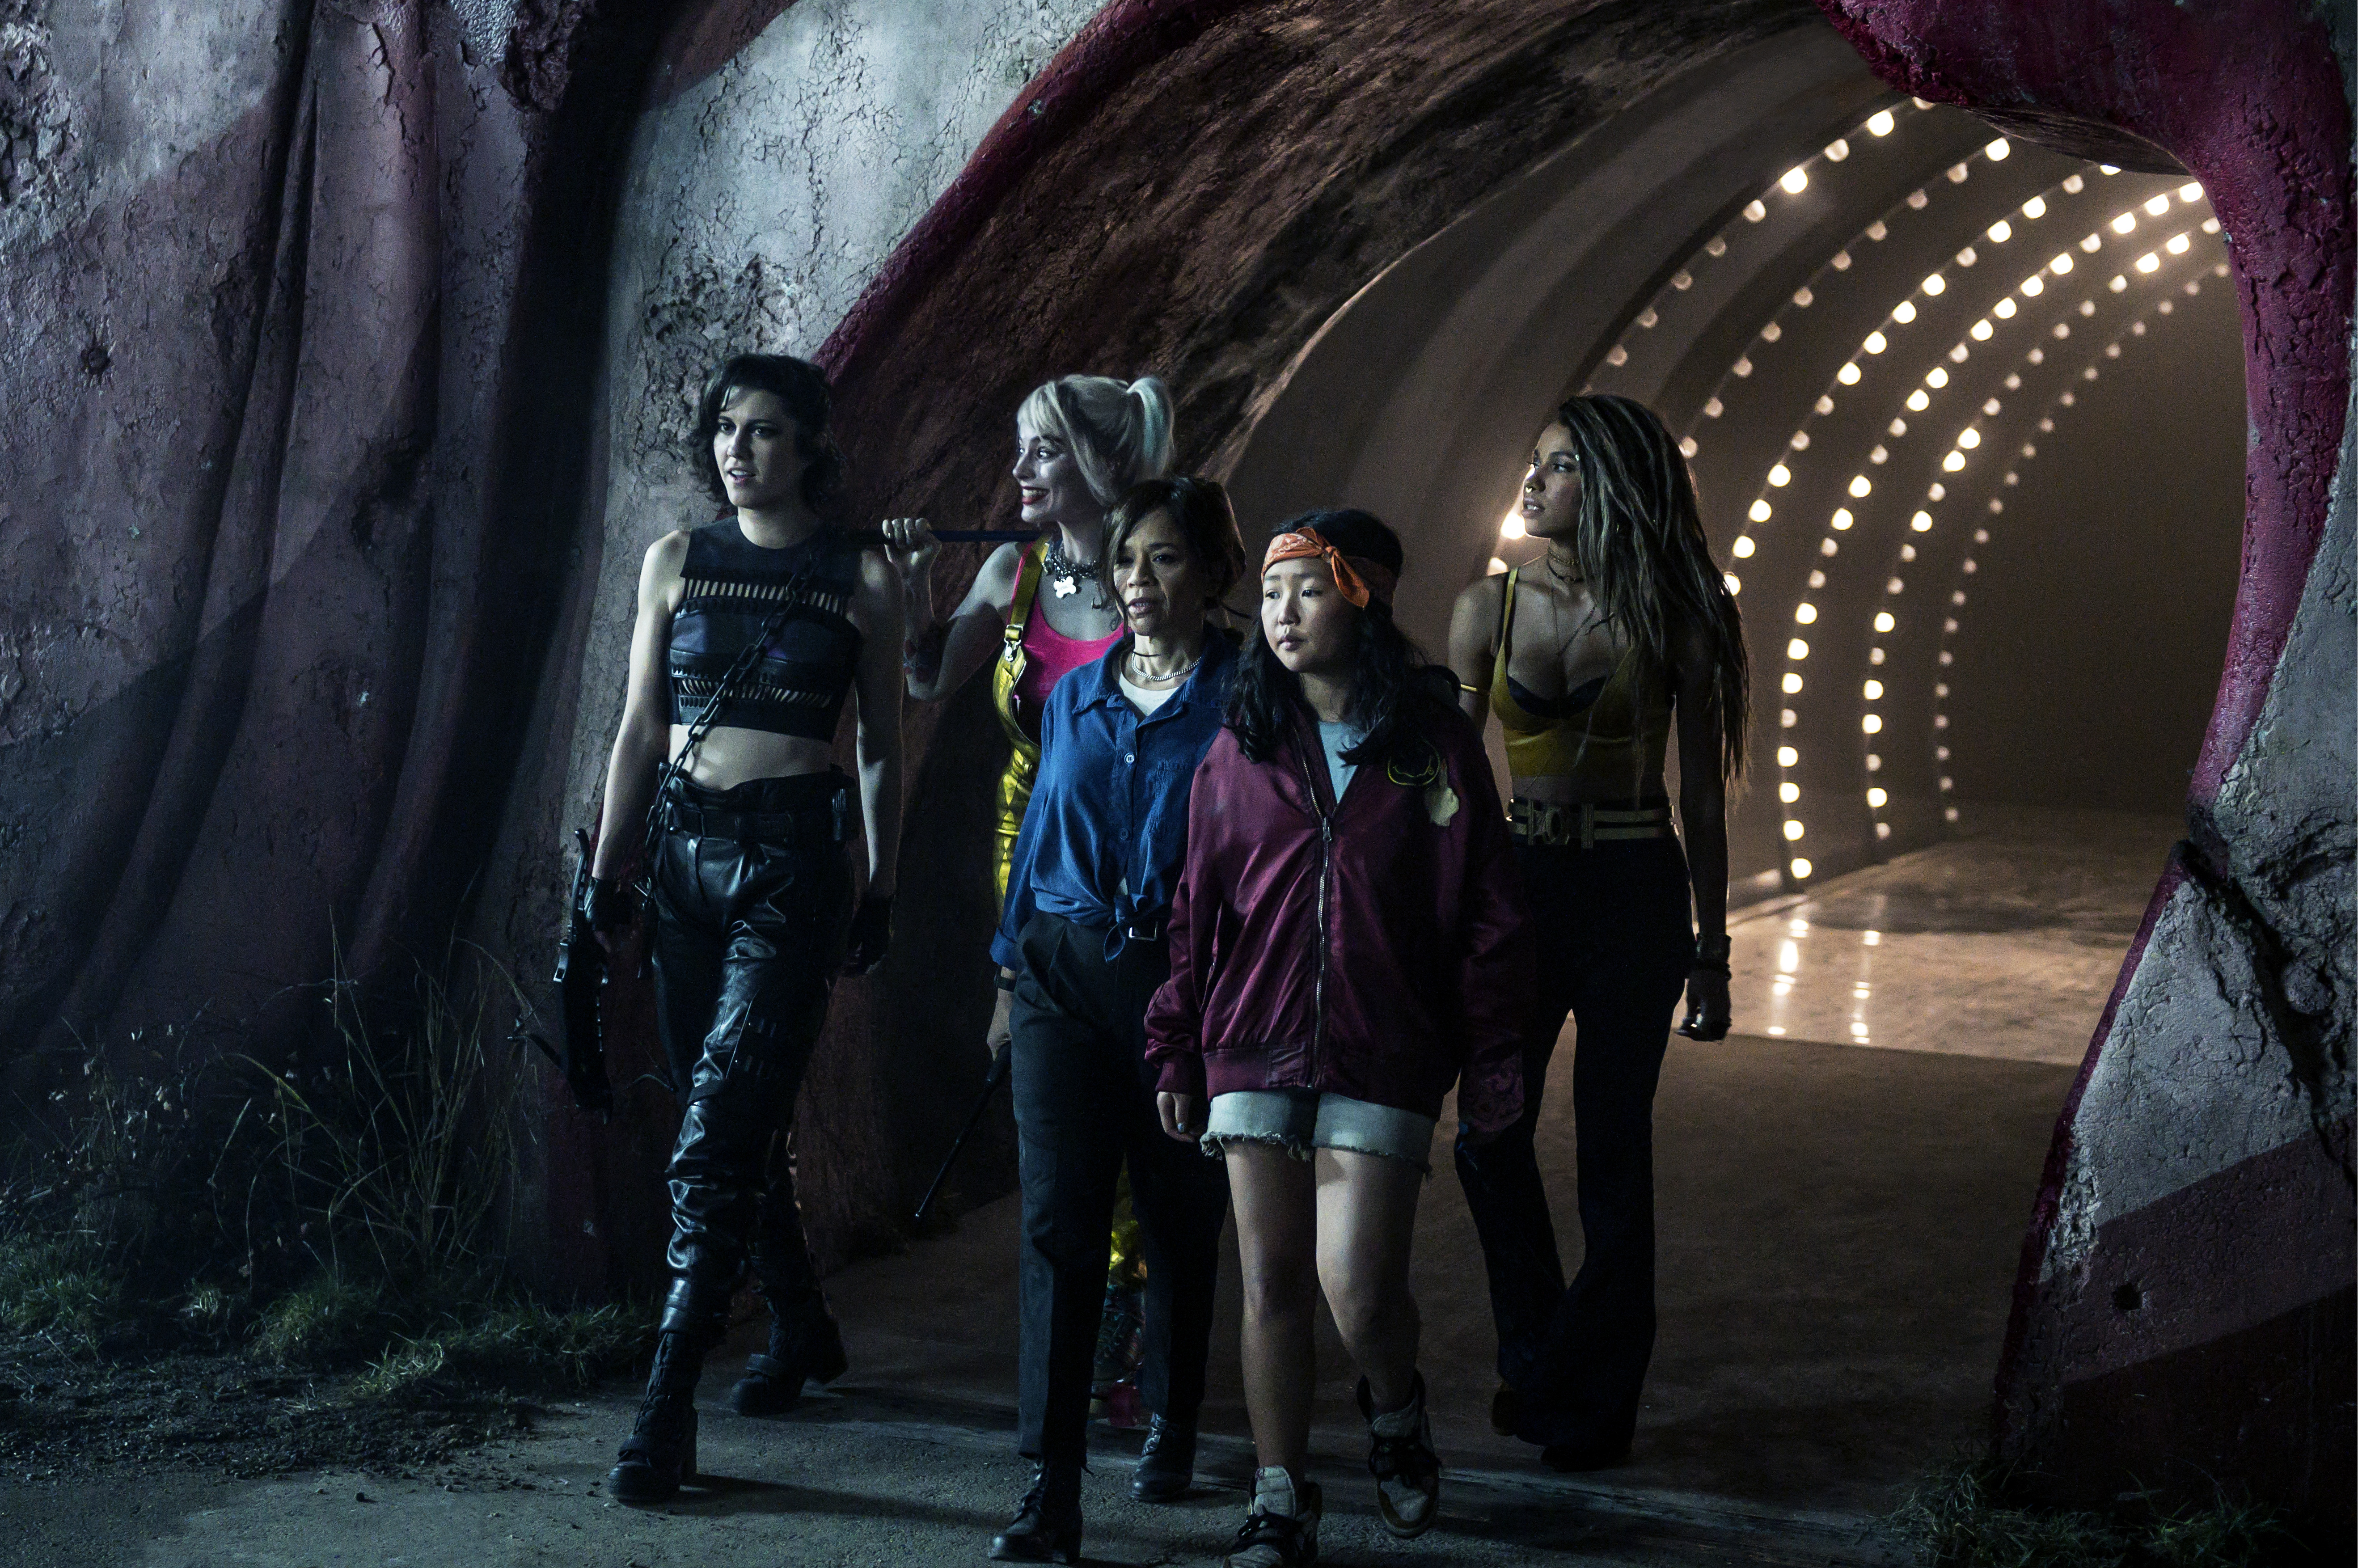 (L-r) Mary Elizabeth Winstead as Huntress, Margot Robbie as Harley Quinn, Rosie Perez as Renee Montoya, Ella Jay Basco as Cassandra Cain and Jurnee Smollett-Bell as Black Canary in Warner Bros. Pictures' 'Birds of Prey (And The Fantabulous Emancipation of One Harley Quinn).'